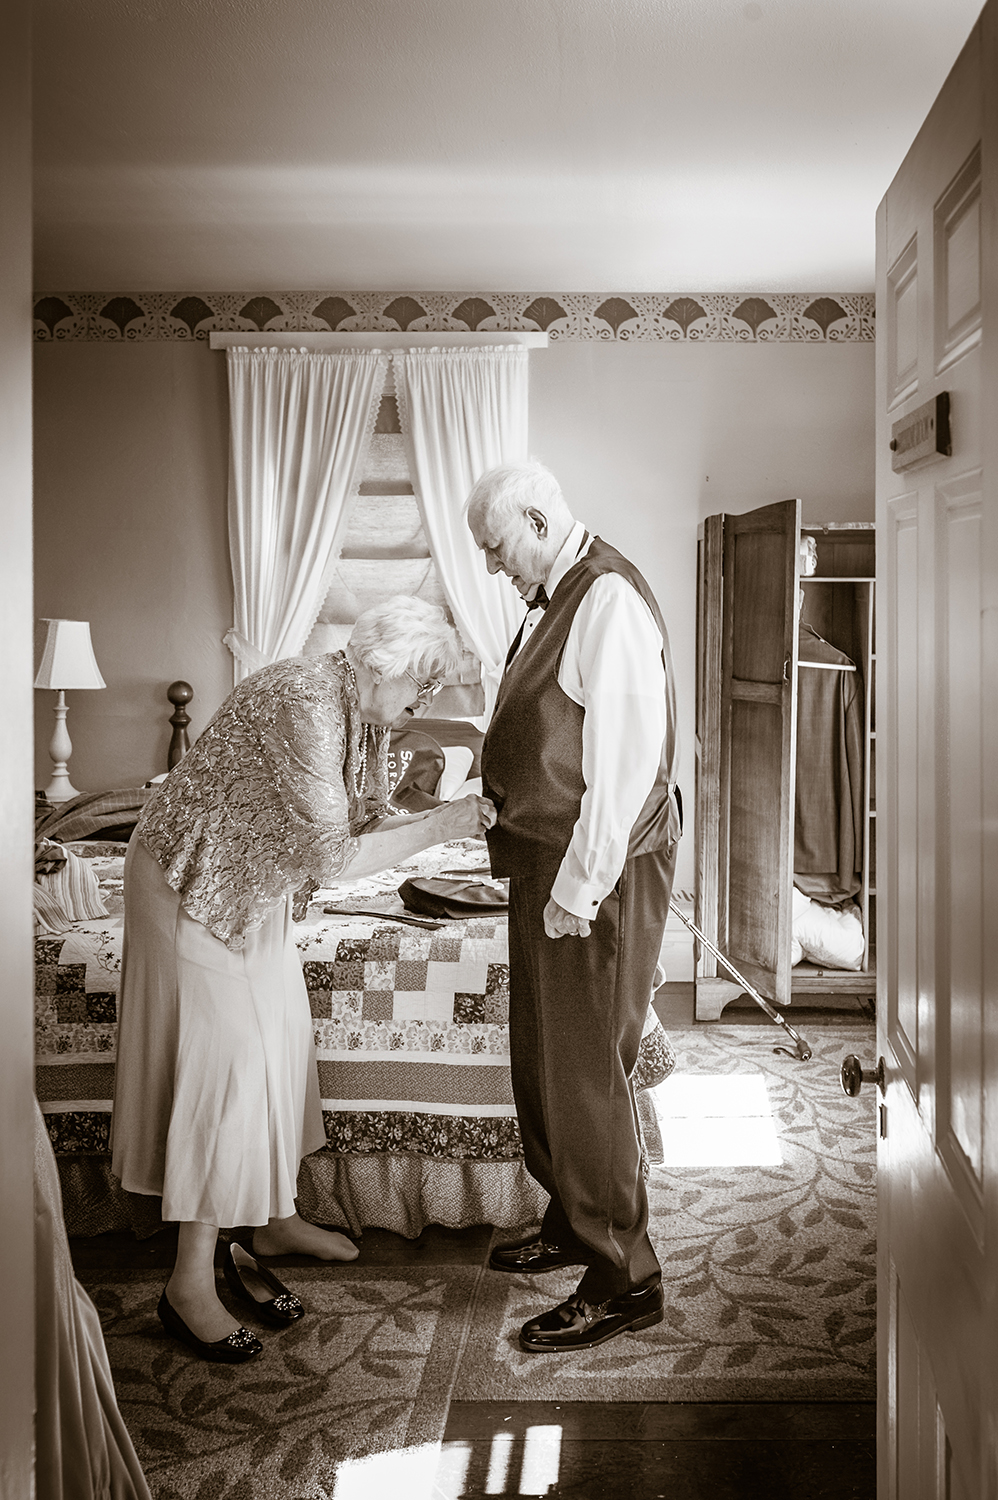 Bride's grandparents at The Dowds' Country Inn & Event Center in Lyme, NH